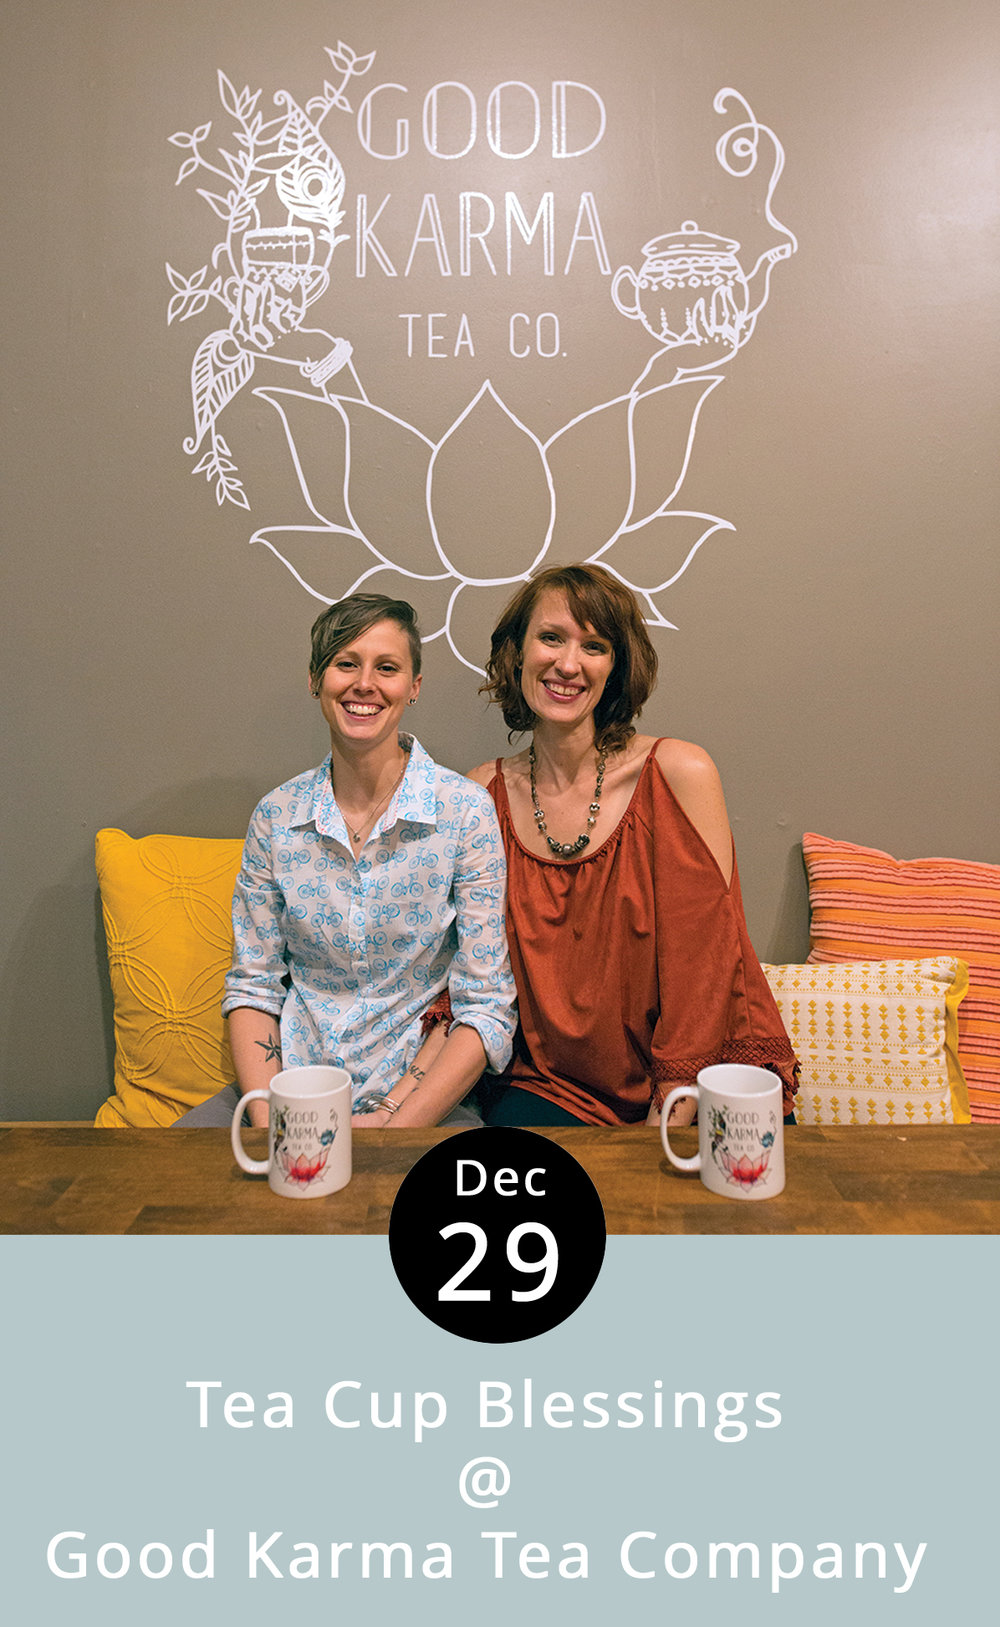 Put an herb-infused candle in a teacup and you've got what the folks at Good Karma Tea Company call a Tea Cup Blessing. They'll explain and offer a how-to workshop on making your very own New Year's candle, with a selection of vintage teacups, herbal supplies, fragrance oils, and blessing tags, on December 29th at 6 p.m. We're told that the herbs and flowers one selects – lavender, clover, fennel, and verbena, to name a few – reveal unique properties as the candle burns. Tickets for the event are $20, and include all the supplies, as well as a 10% discount on bulk herbs. The in-house tea bar will, of course, be open for service. Space is limited, so call ahead or go to  www.sipgoodkarma.com  to reserve a spot. Good Karma is located in the Riverviews Artspace, 901 Jefferson St., Suite 110; call (434)  515-2058.